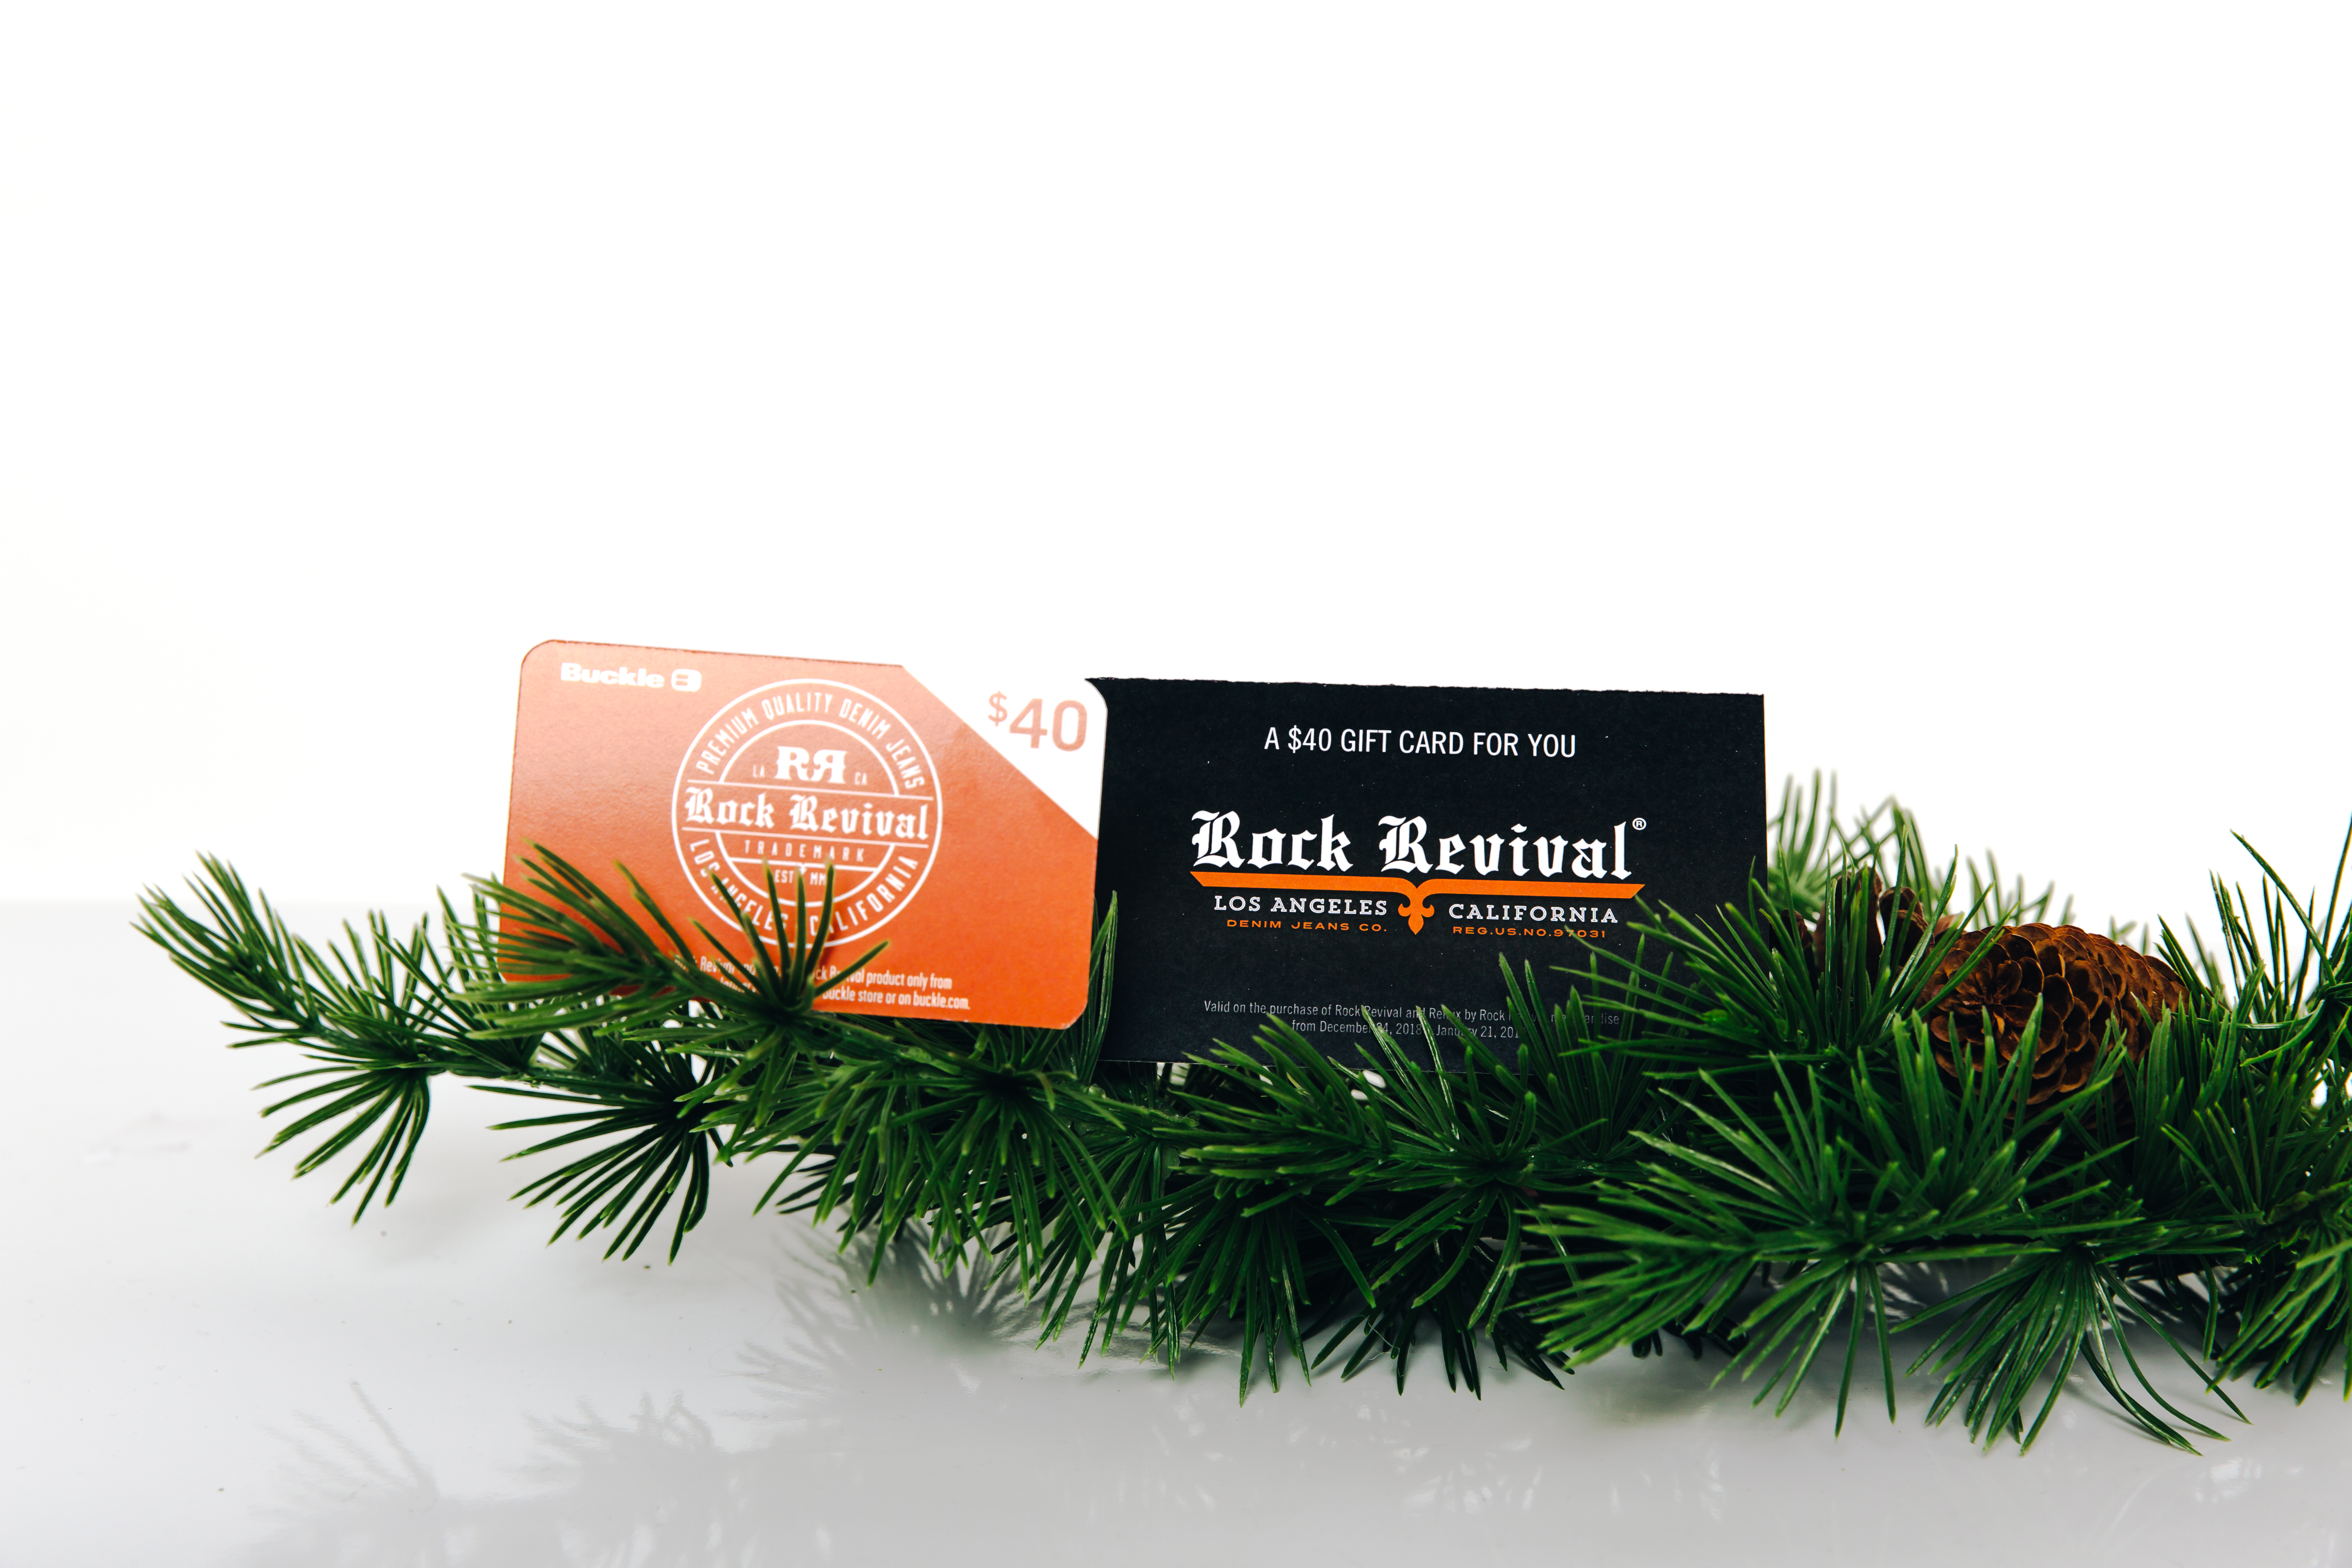 Black Friday gift with purchase at Buckle